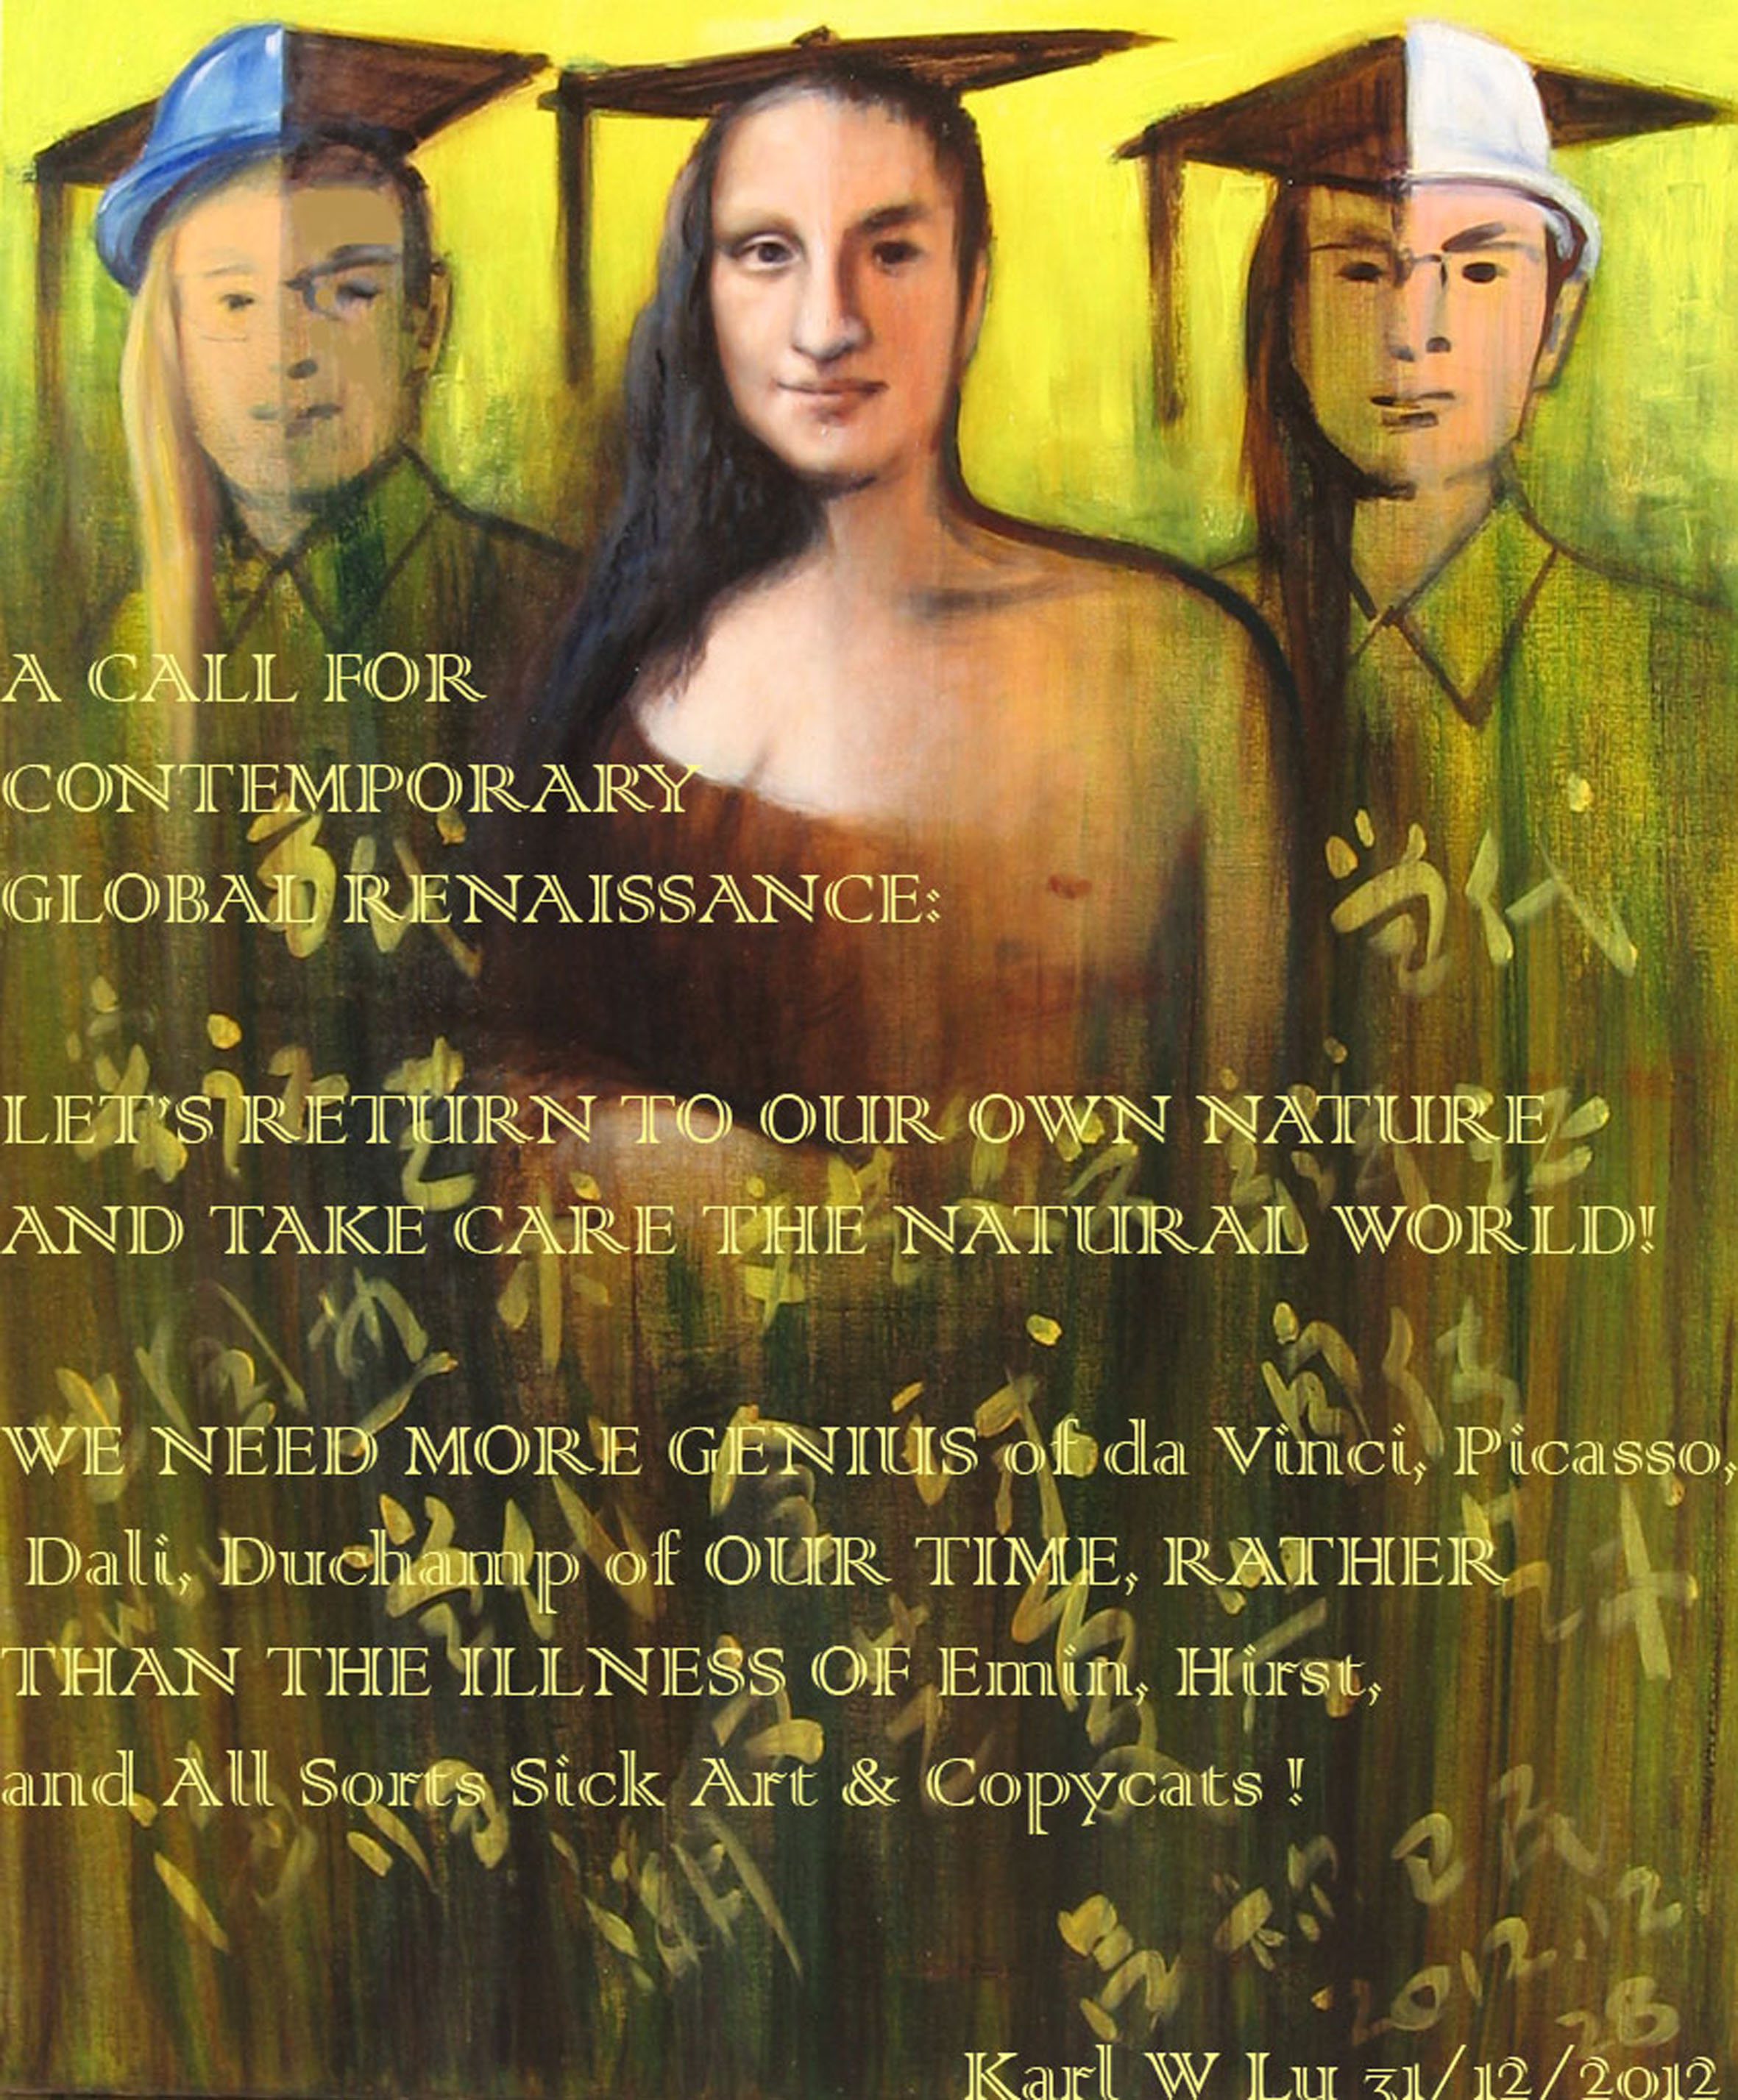 Dialectic Self-Portrait with A Call for Contemporary Renaissance (Positive Global Life 2008 - 2012)